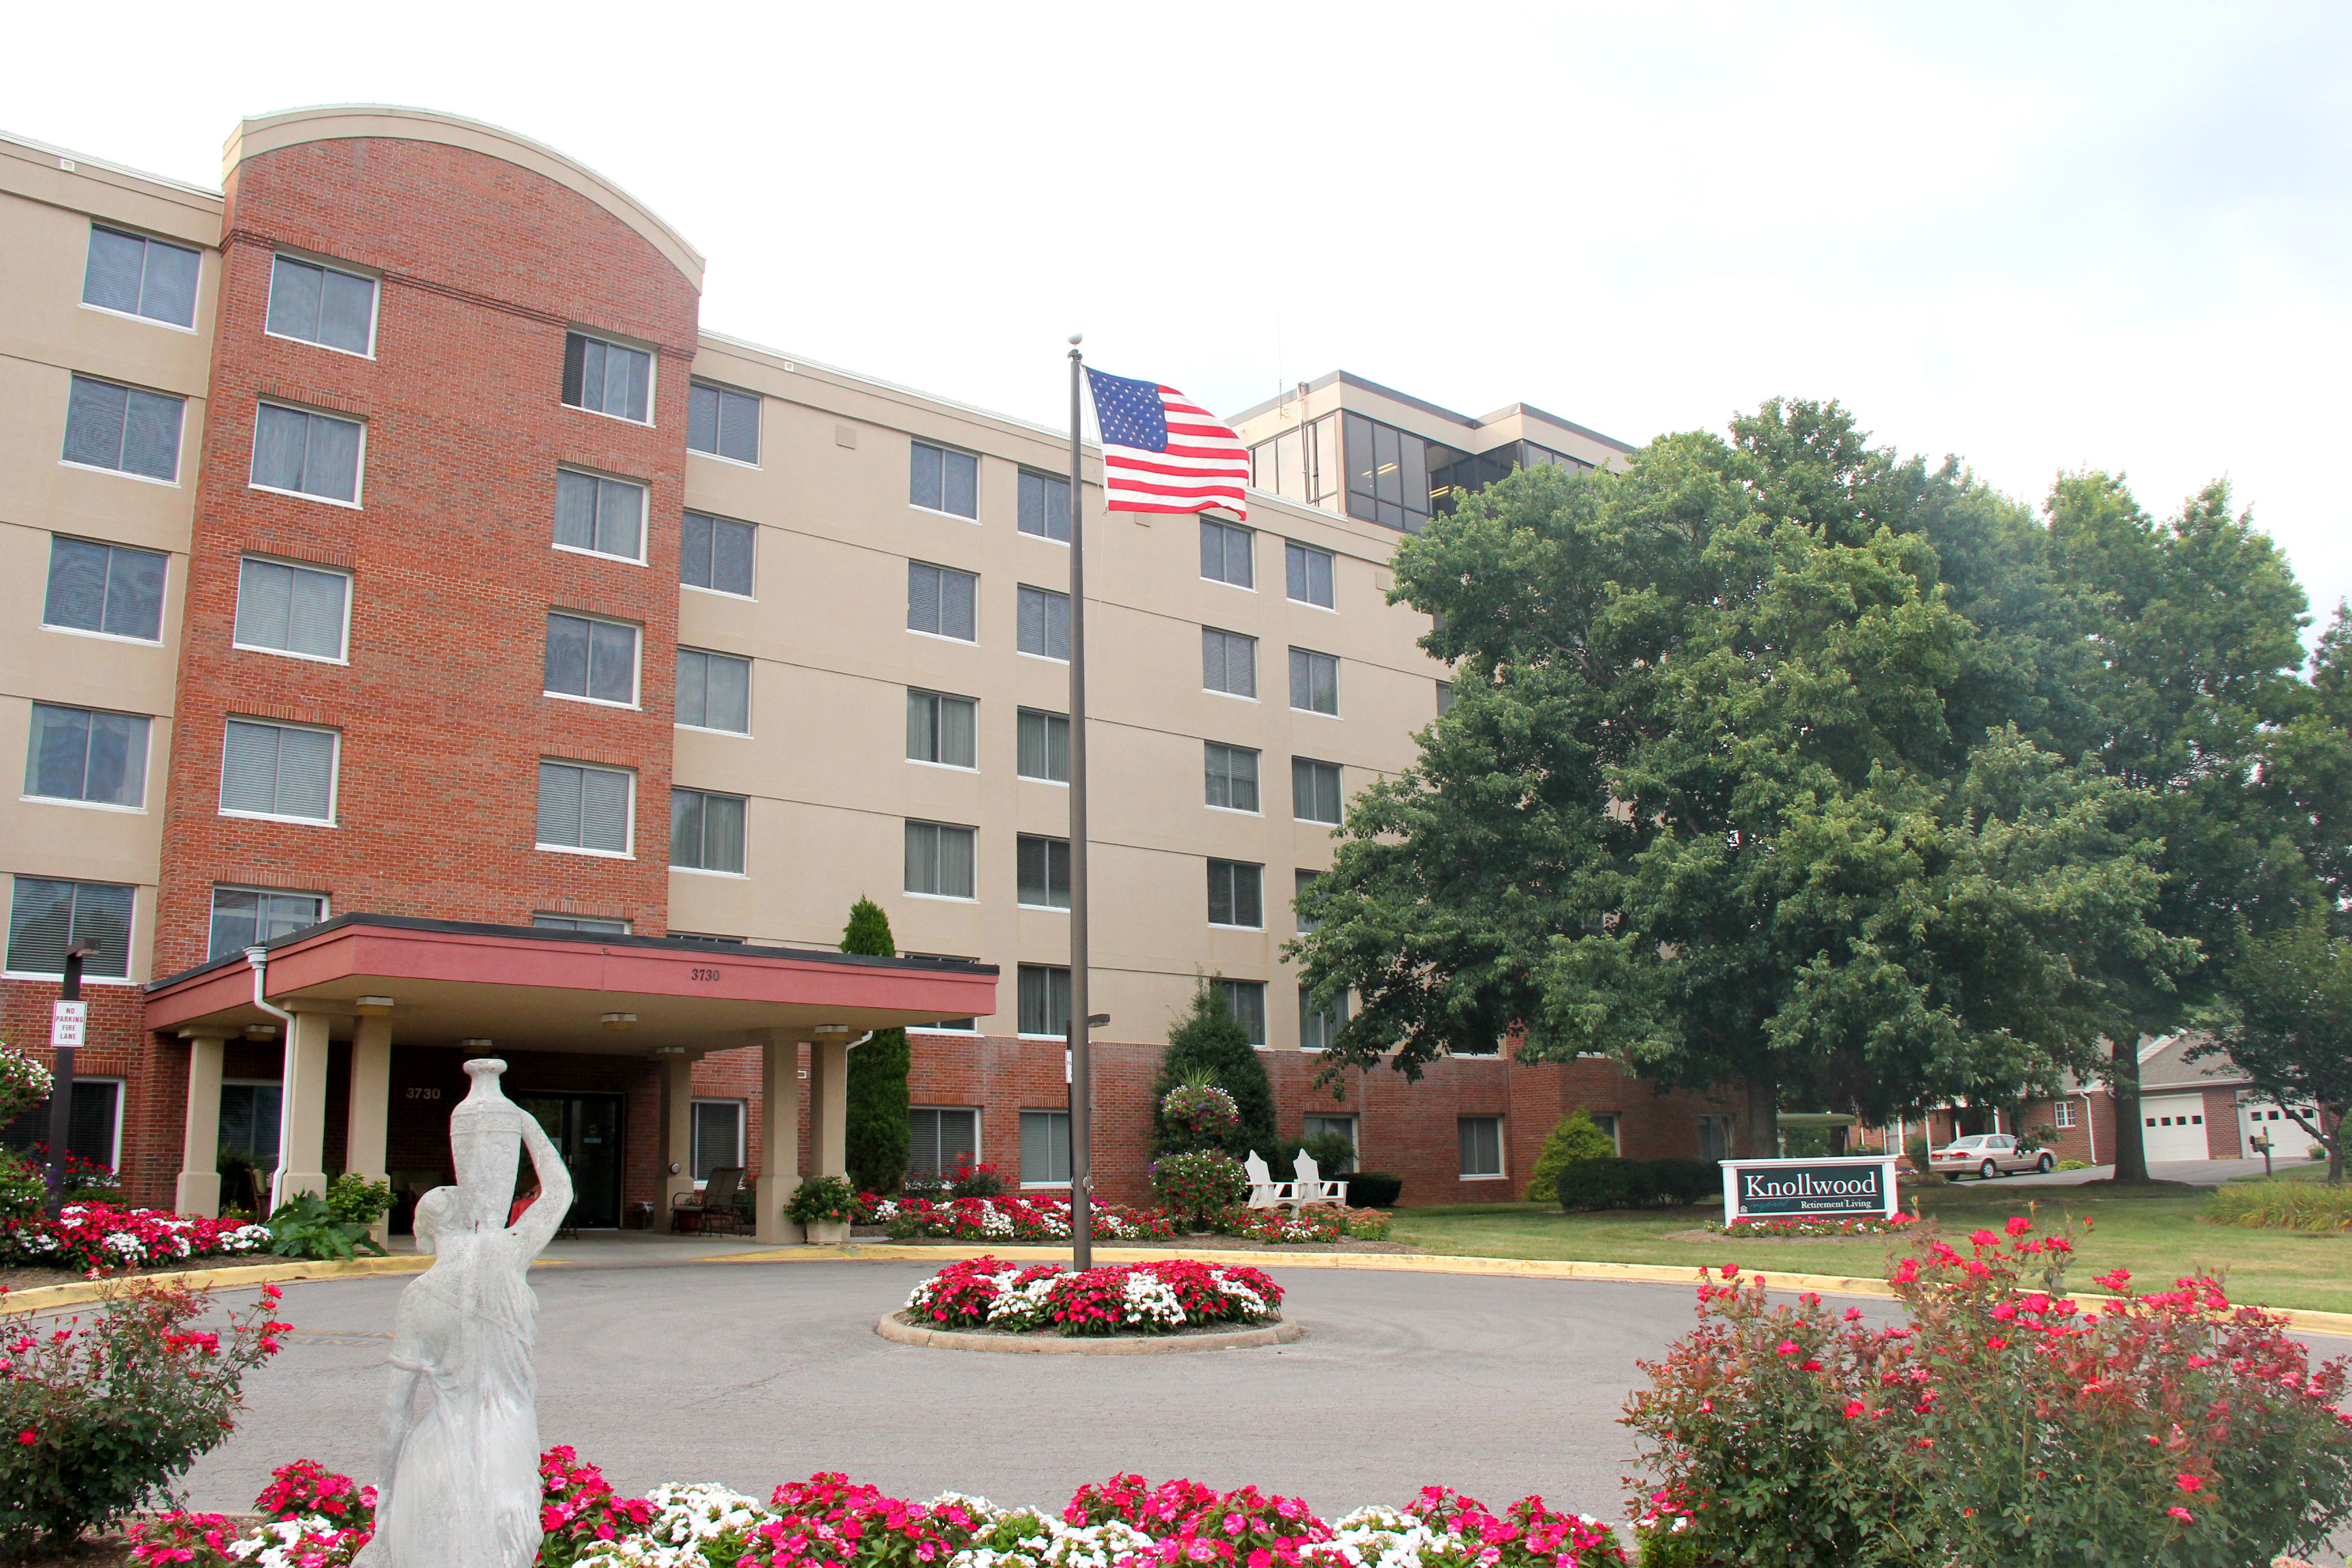 Knollwood Richfield Independent Living Facility